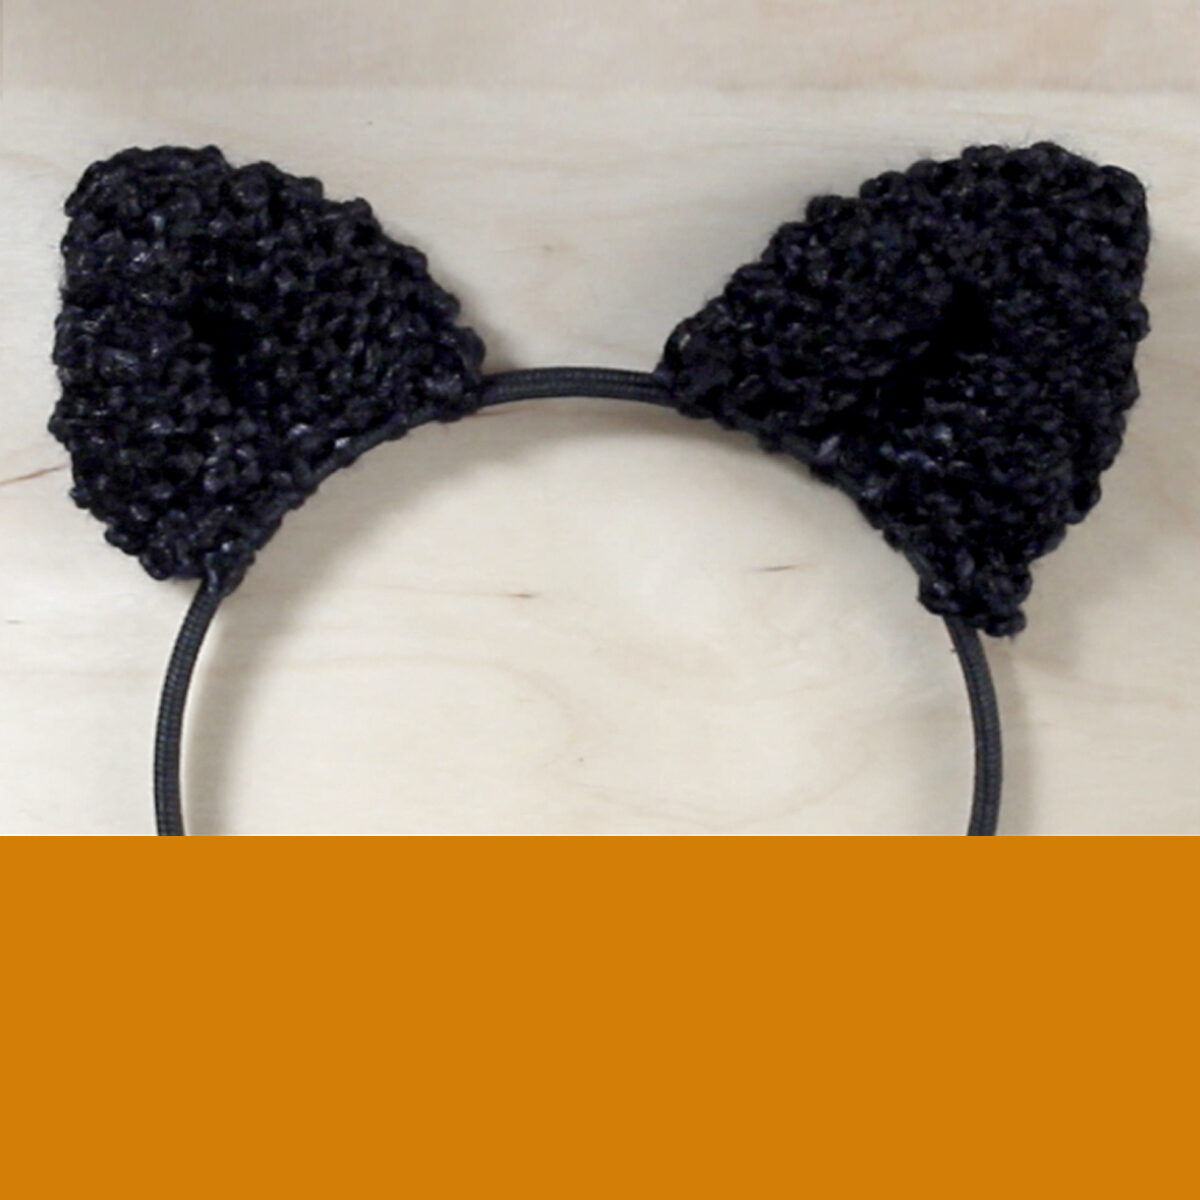 Knitted Cat Ears on a headband in black color yarn.